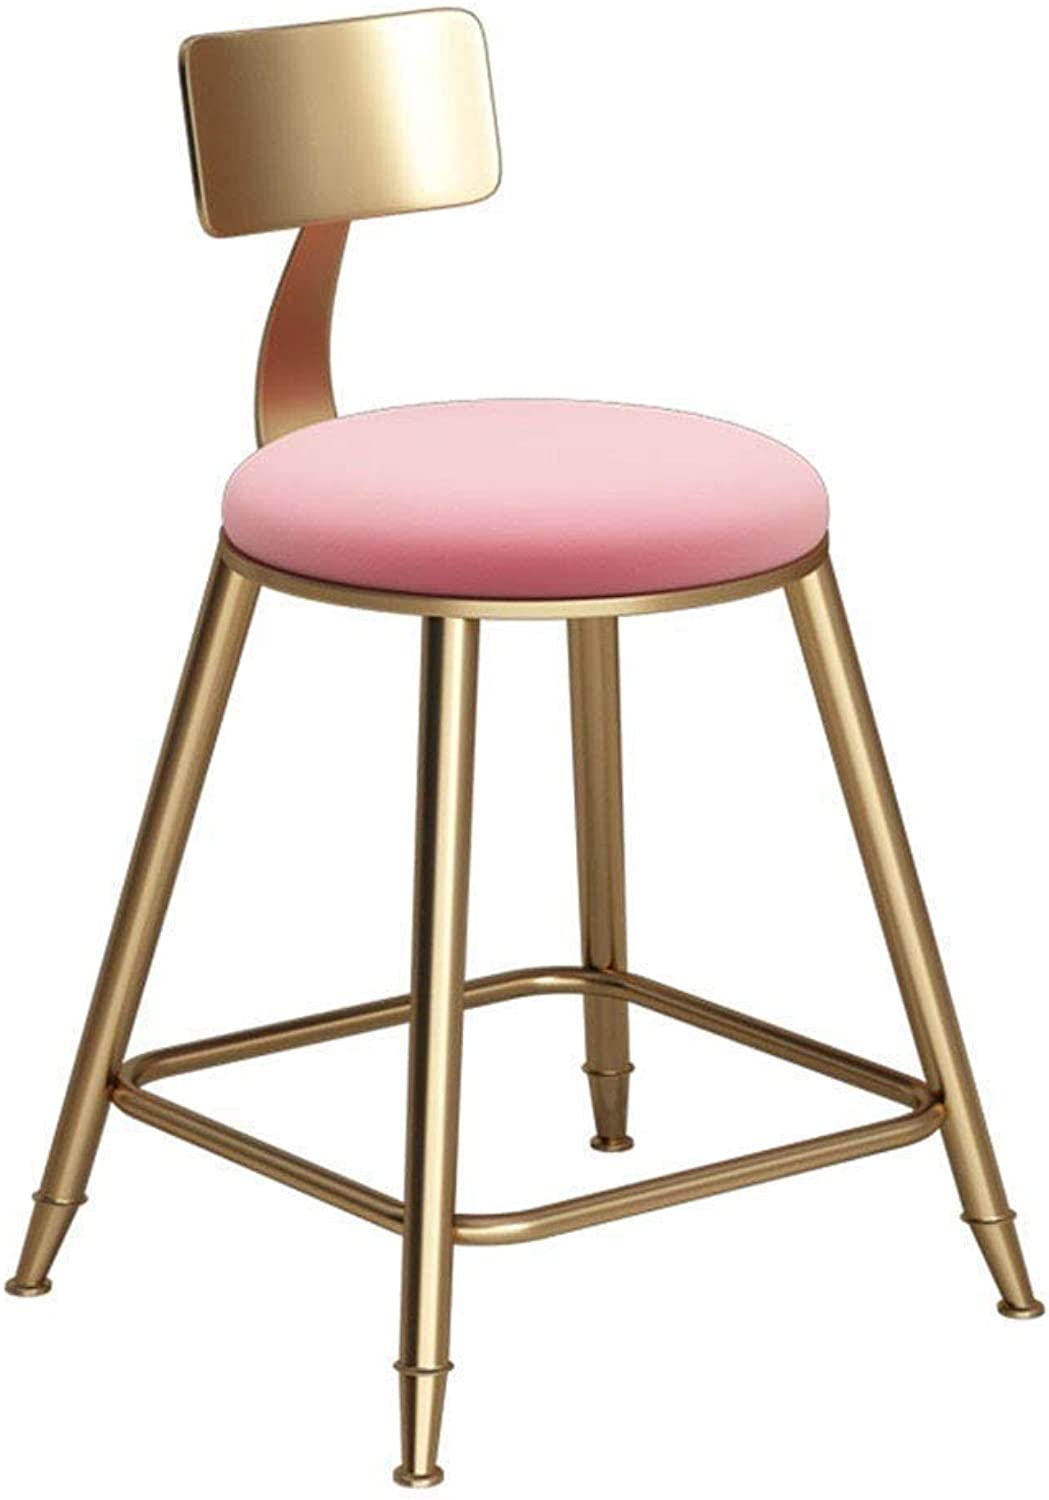 Modern Bar Chair -Kitchen bar High Stool gold Metal Pink Velvet Cushion Restaurant Cafe Chair JINRONG (color   Pink, Size   45cm)